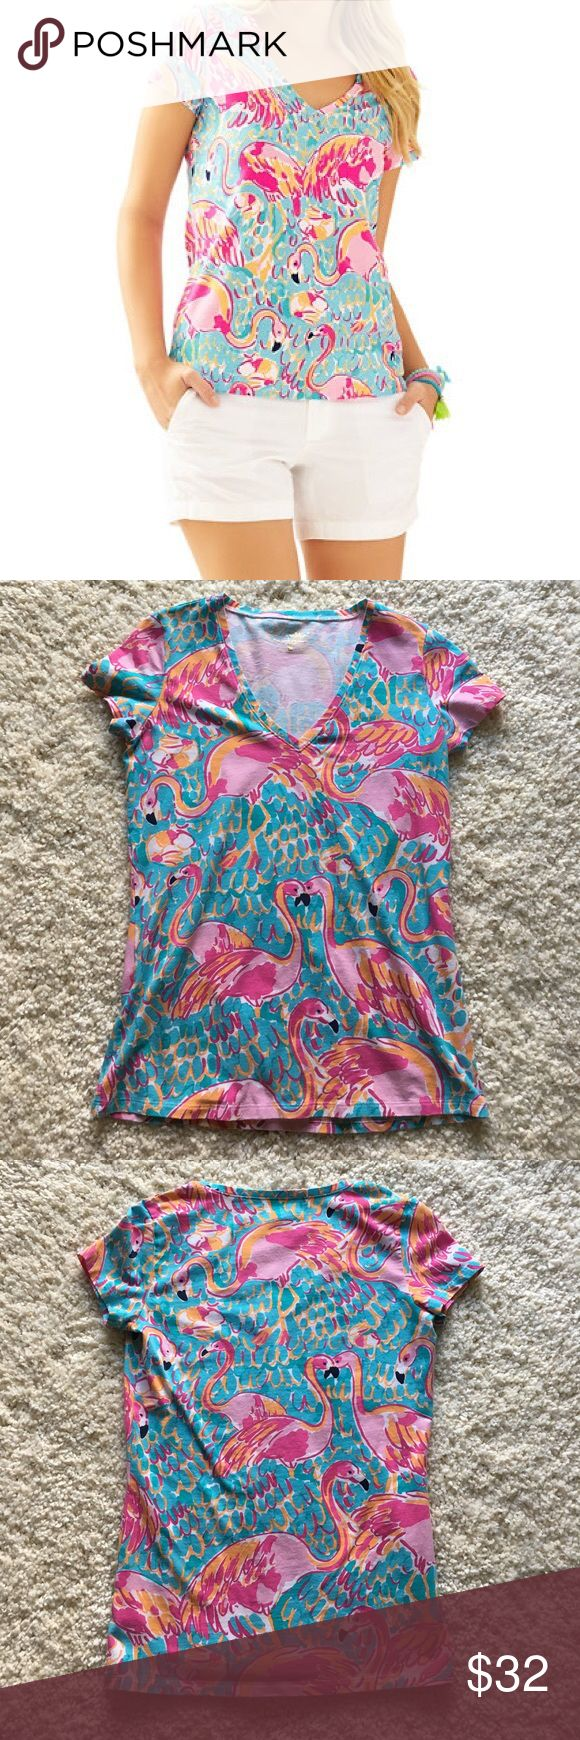 "🆕 Lilly Pulitzer Peel and Eat tee Popular print ""Peel and Eat"" in the Michelle v-neck tee. Slim fit with cap sleeves. Size XS. ❗️Sorry, I do not trade.❗️ Lilly Pulitzer Tops Tees - Short Sleeve"